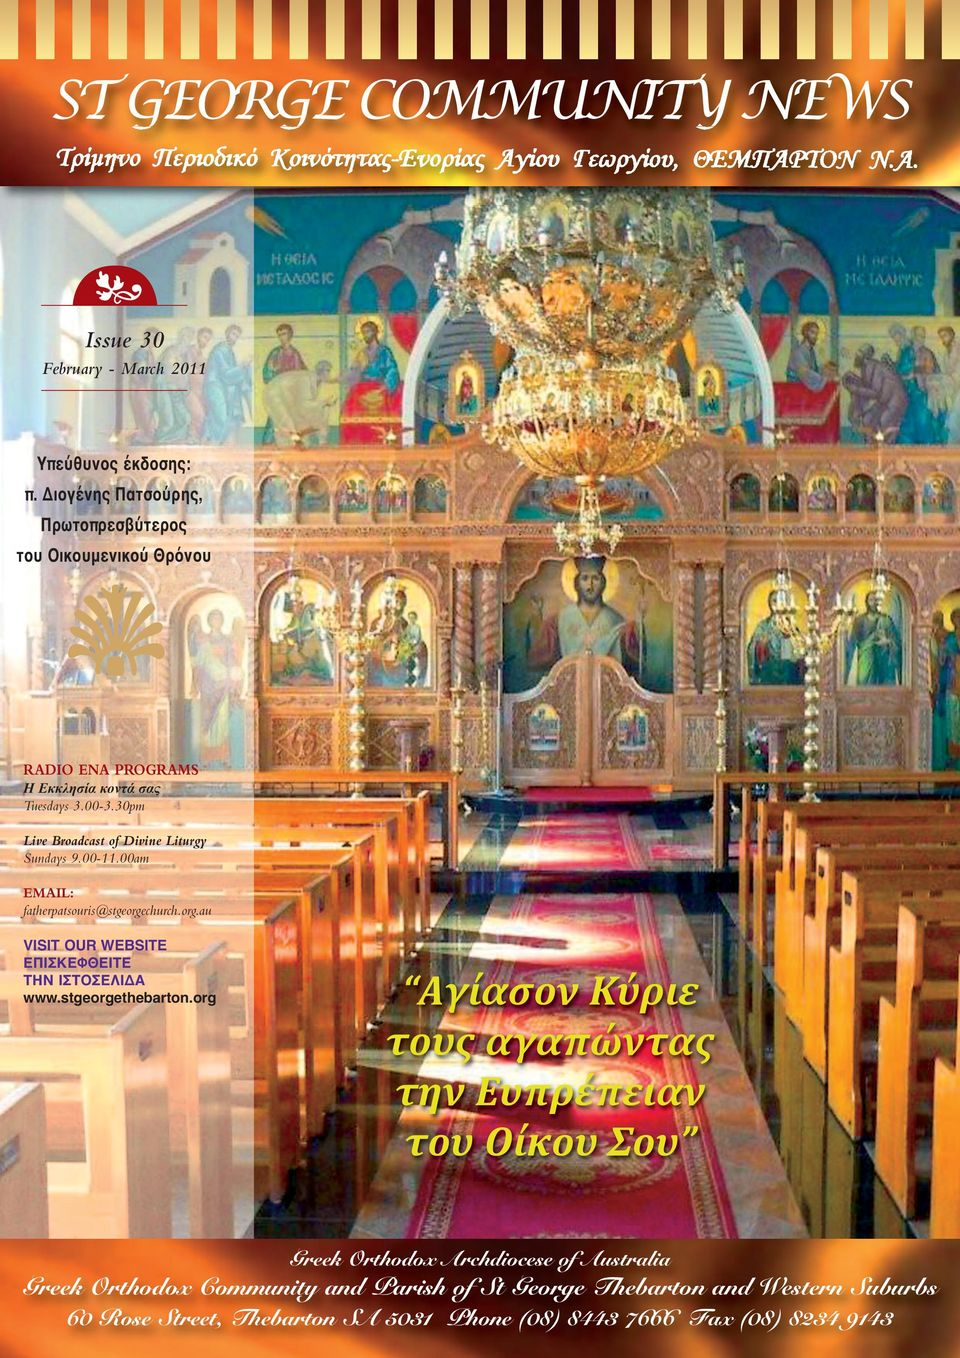 30pm Live Broadcast of Divine Liturgy Sundays 9.00-11.00am EMAIL: fatherpatsouris@stgeorgechurch.org.au VISIT OUR WEBSITE ΕΠΙΣΚΕΦΘΕΙΤΕ ΤΗΝ ΙΣΤΟΣΕΛΙΔΑ www.